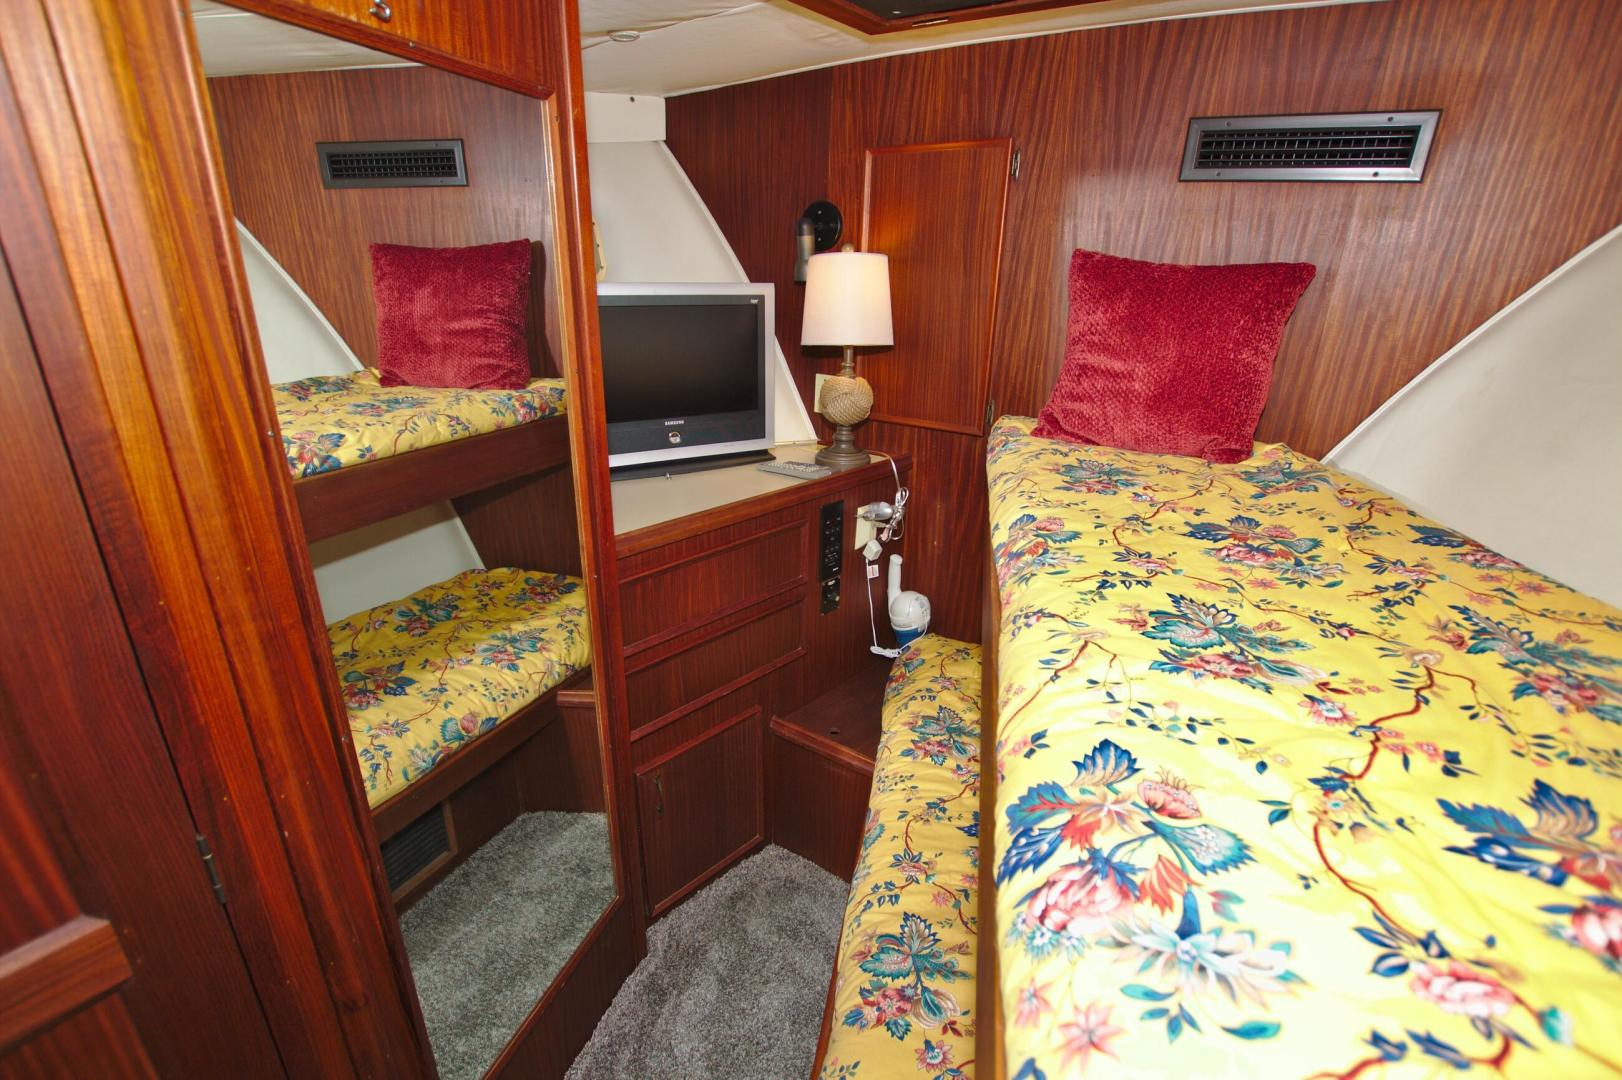 Hatteras-53 Extended Deckhouse Motor Yacht 1983-Luv Options Palmetto-Florida-United States-1513012 | Thumbnail